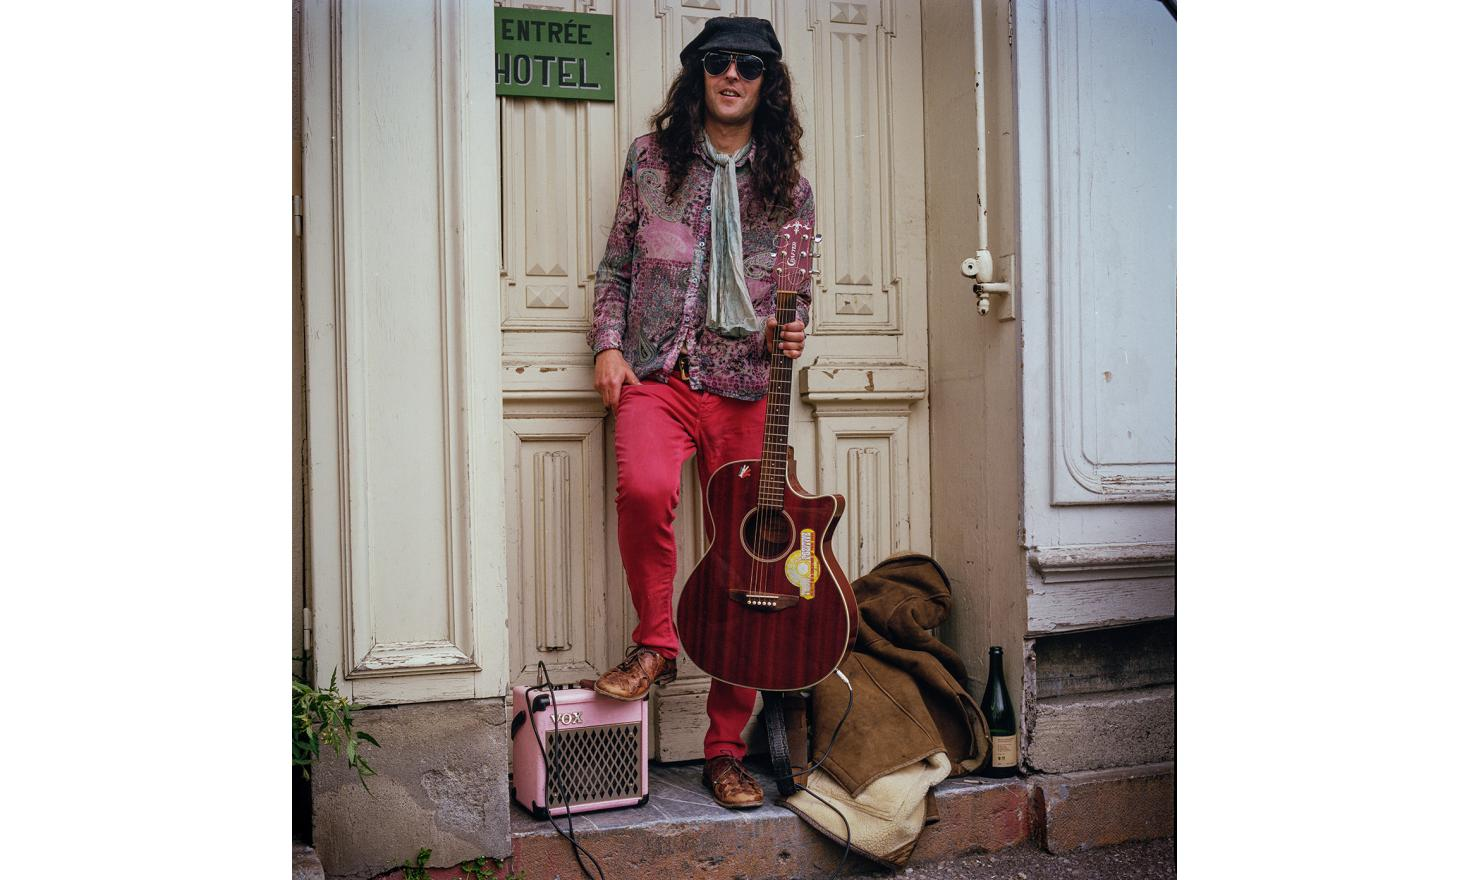 I met Derek in Saint-Girons'market, with his guitar, a Marshall amp wearing a flower shirt, a John Lennon attitude, he was doing his show, the gawker gave him a few coins. A real vintage hippie look. Derek is from England.